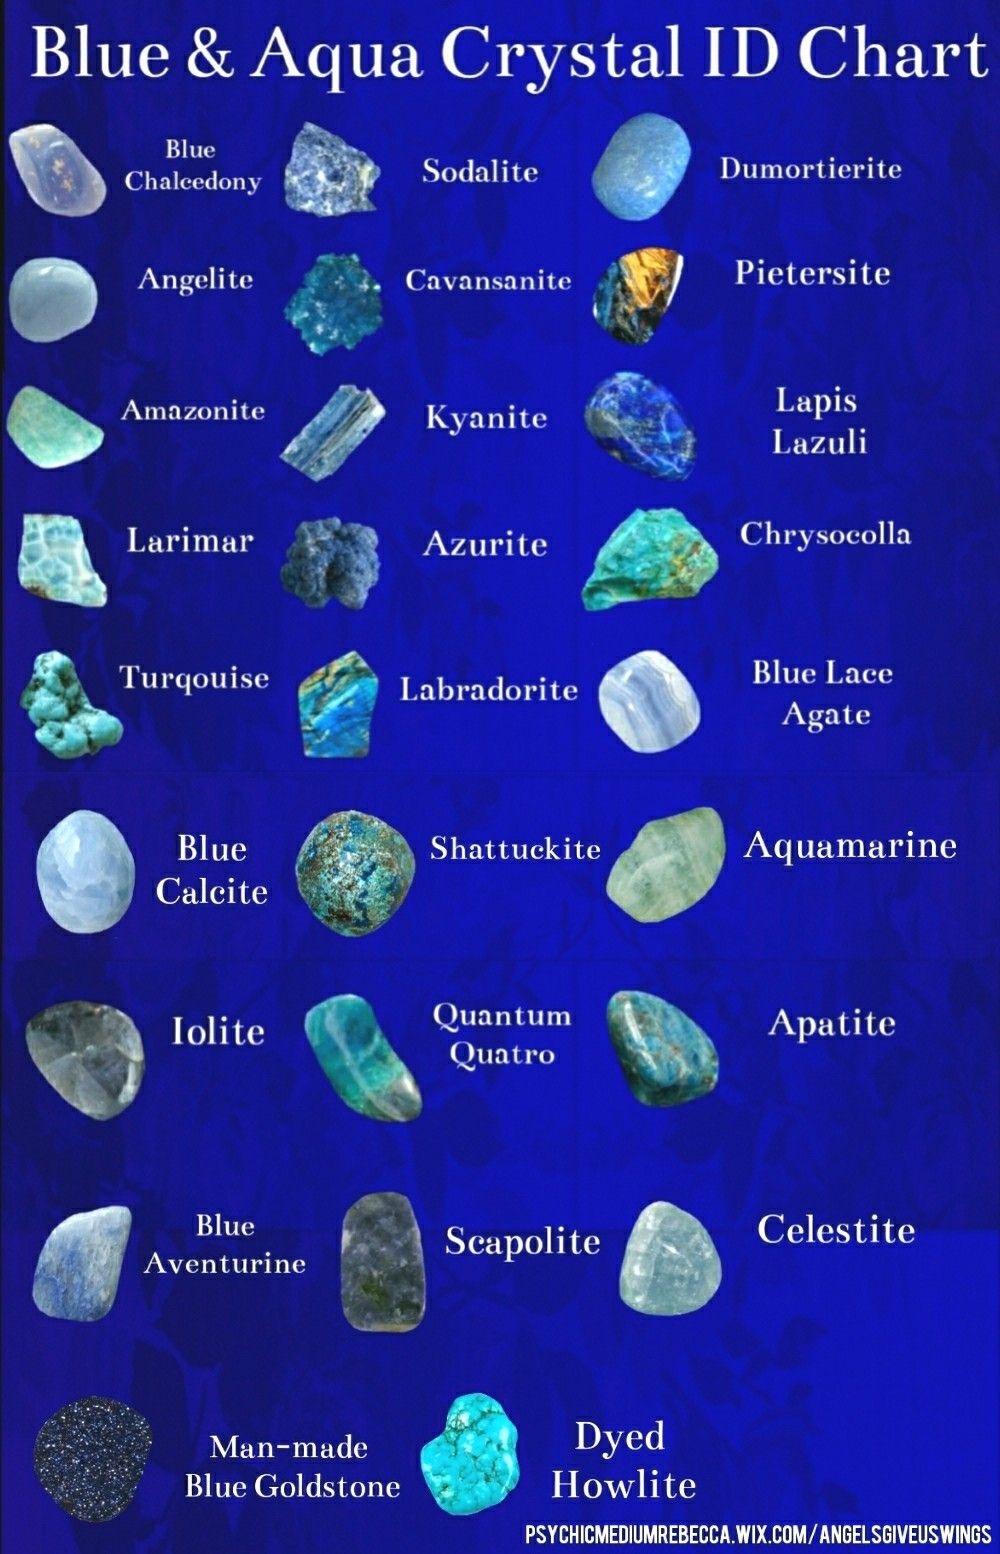 Identification Chart For Blue And Aqua Colored Crystals